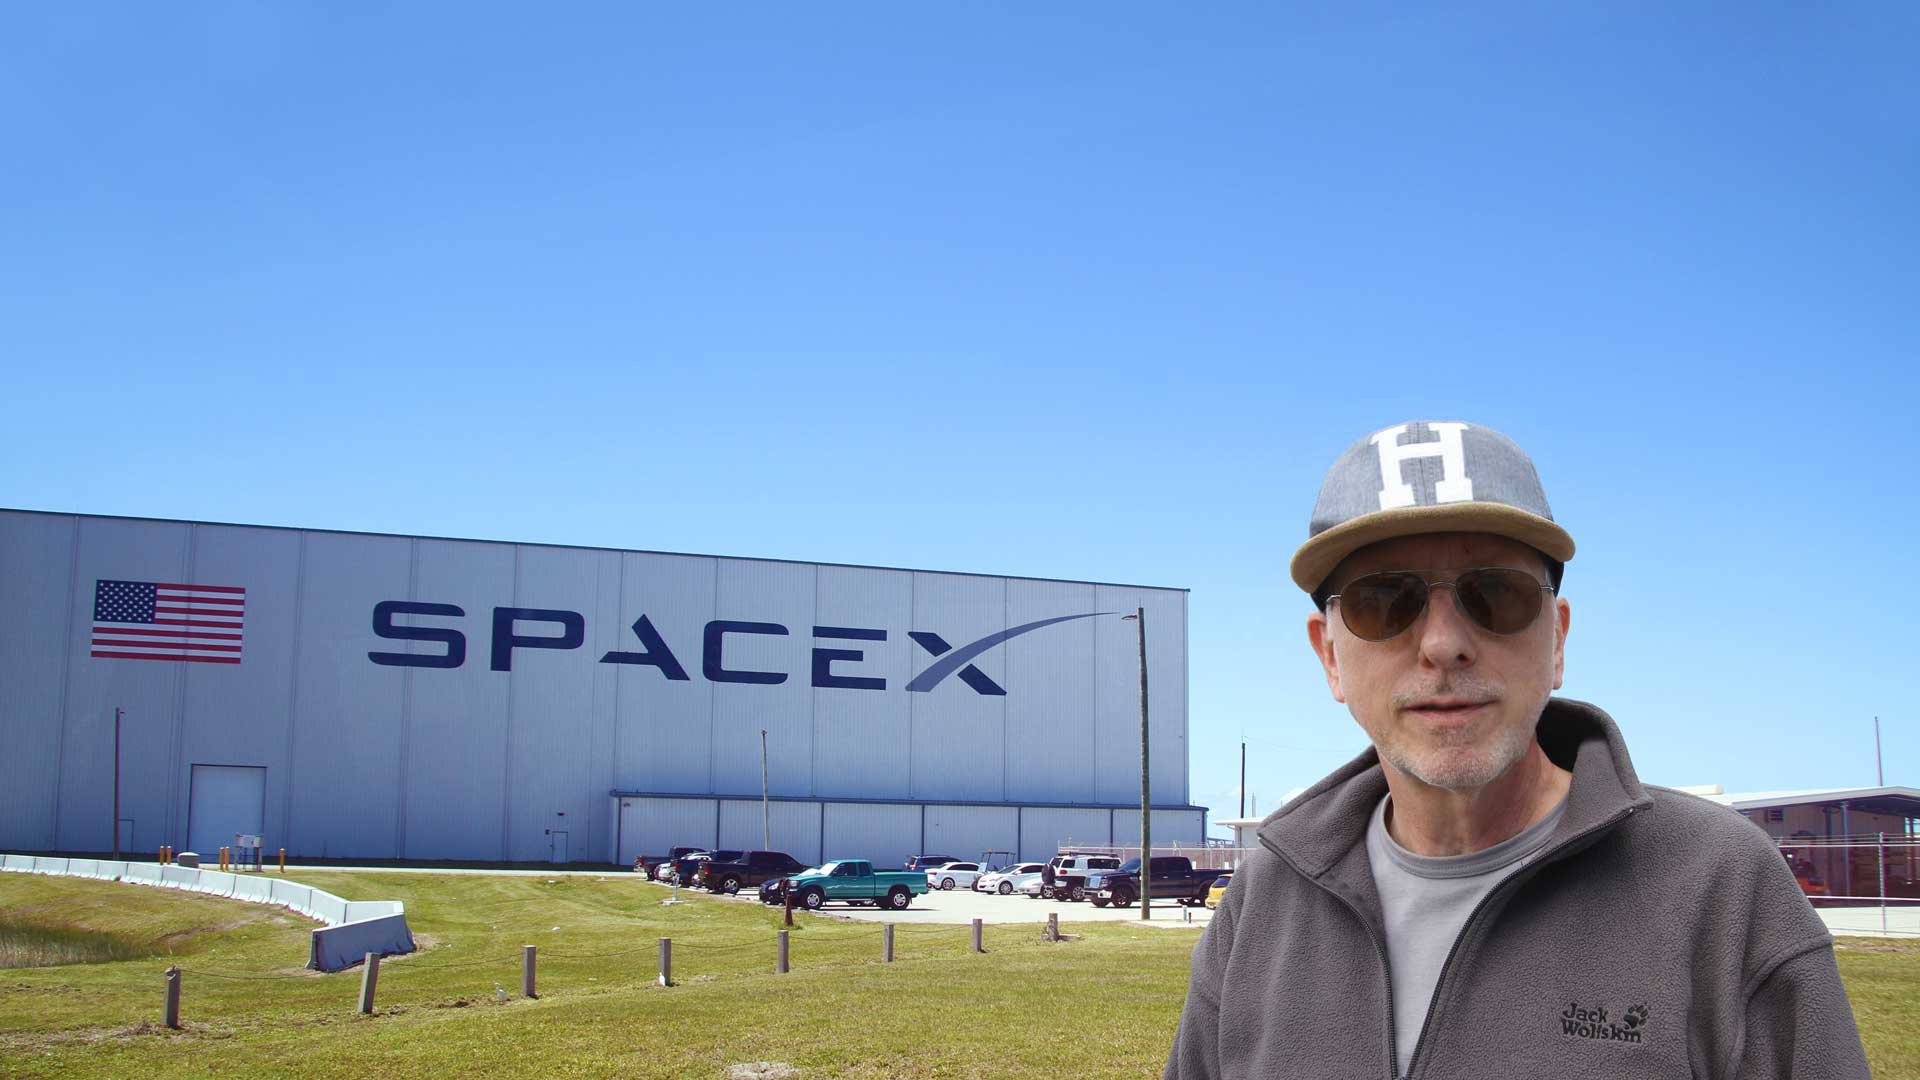 Gregor Spörri in front of the spacex rocket assembly hall.